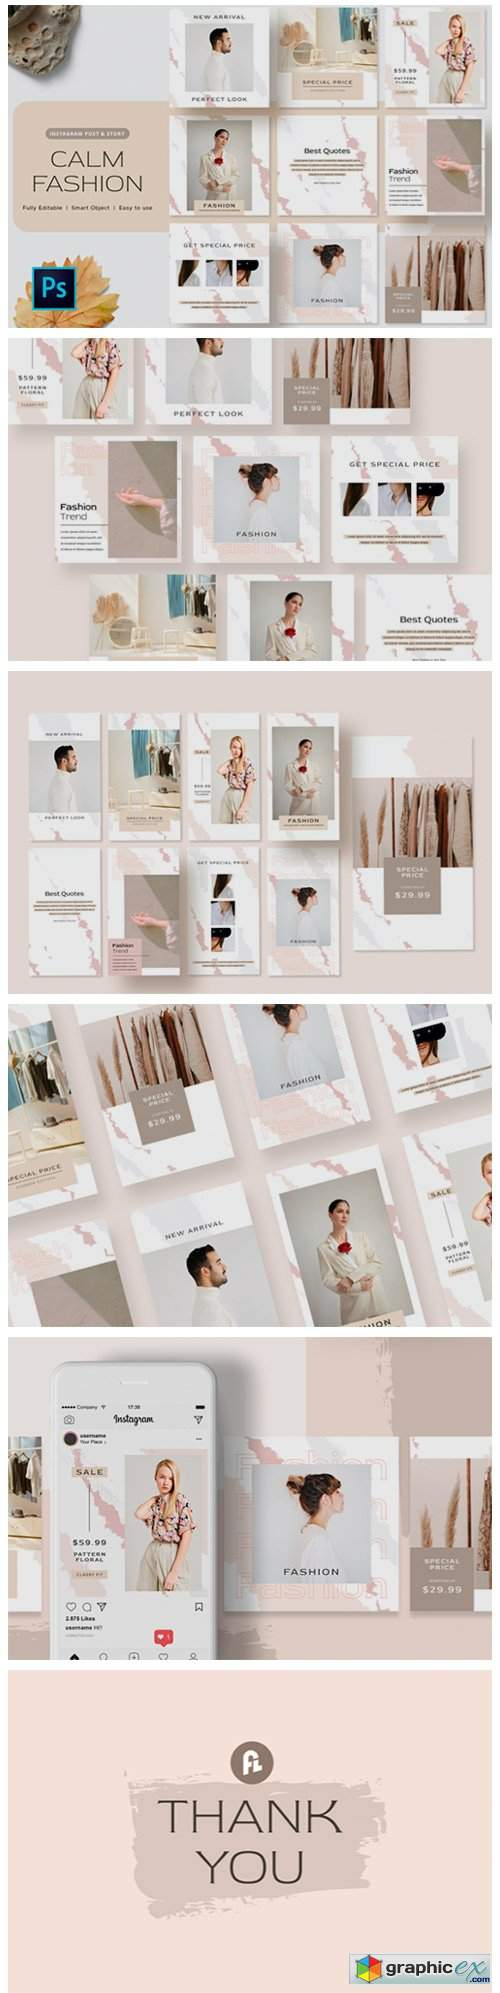 Calm Fashion Instagram Post Template